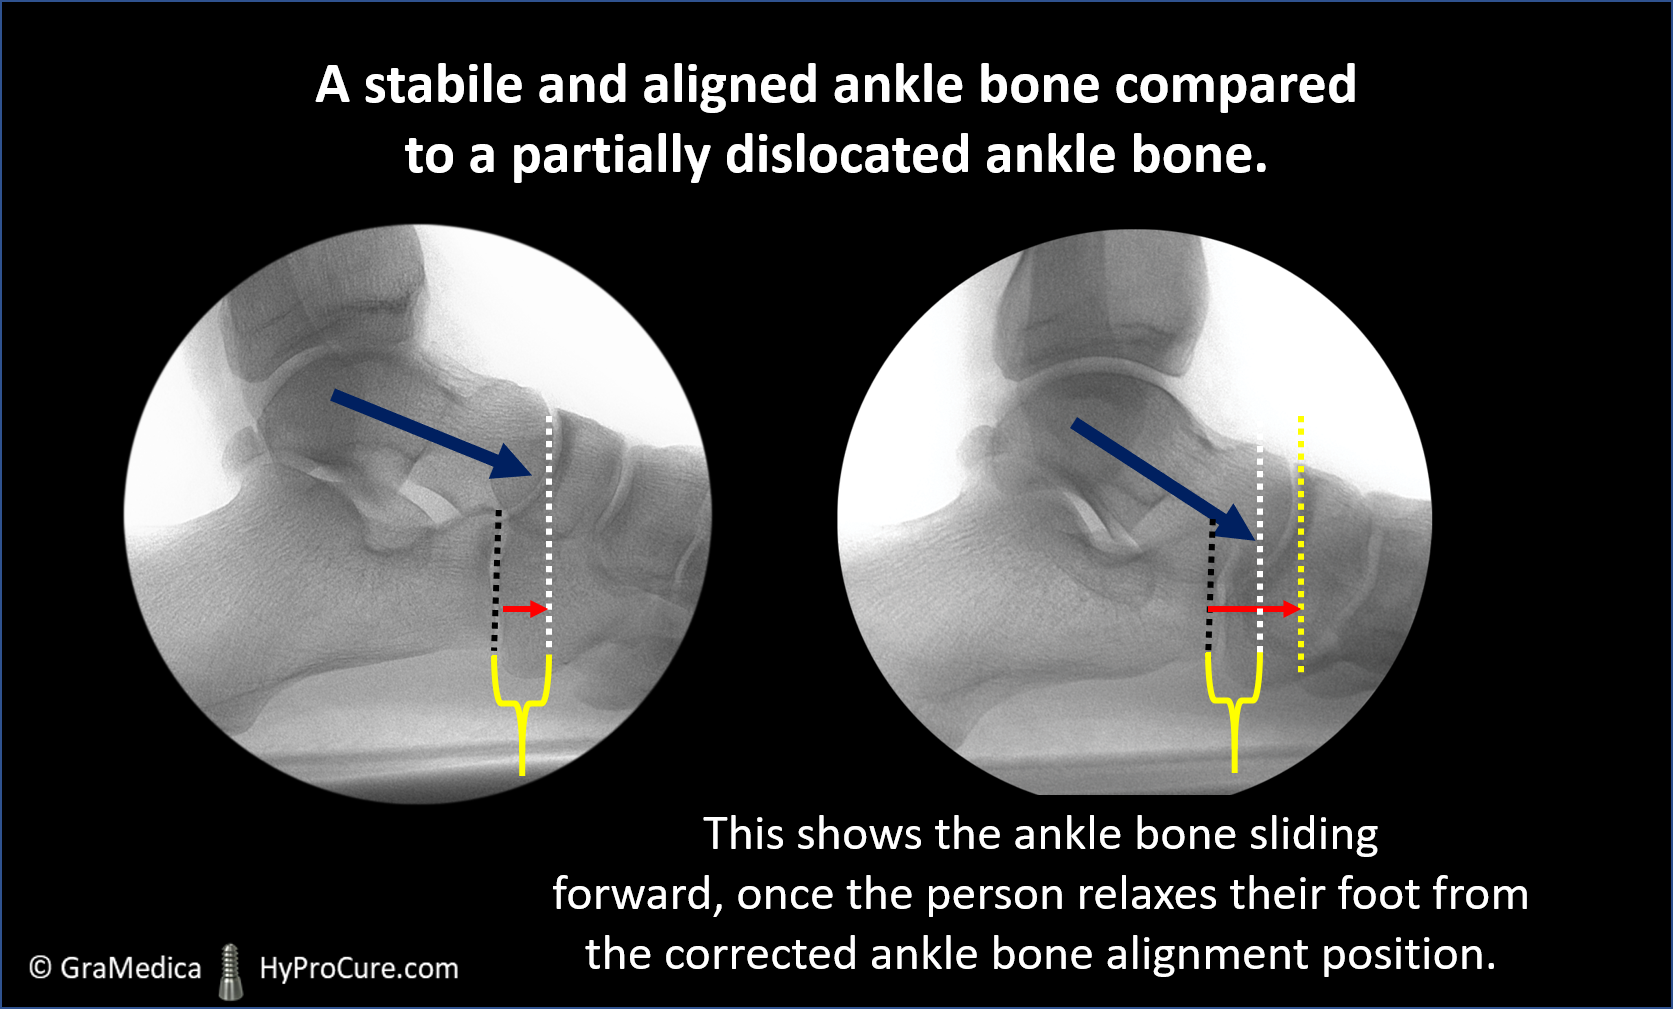 Foot x-ray showing a stabile and aligned ankle bone compared to a partially dislocated ankle bone